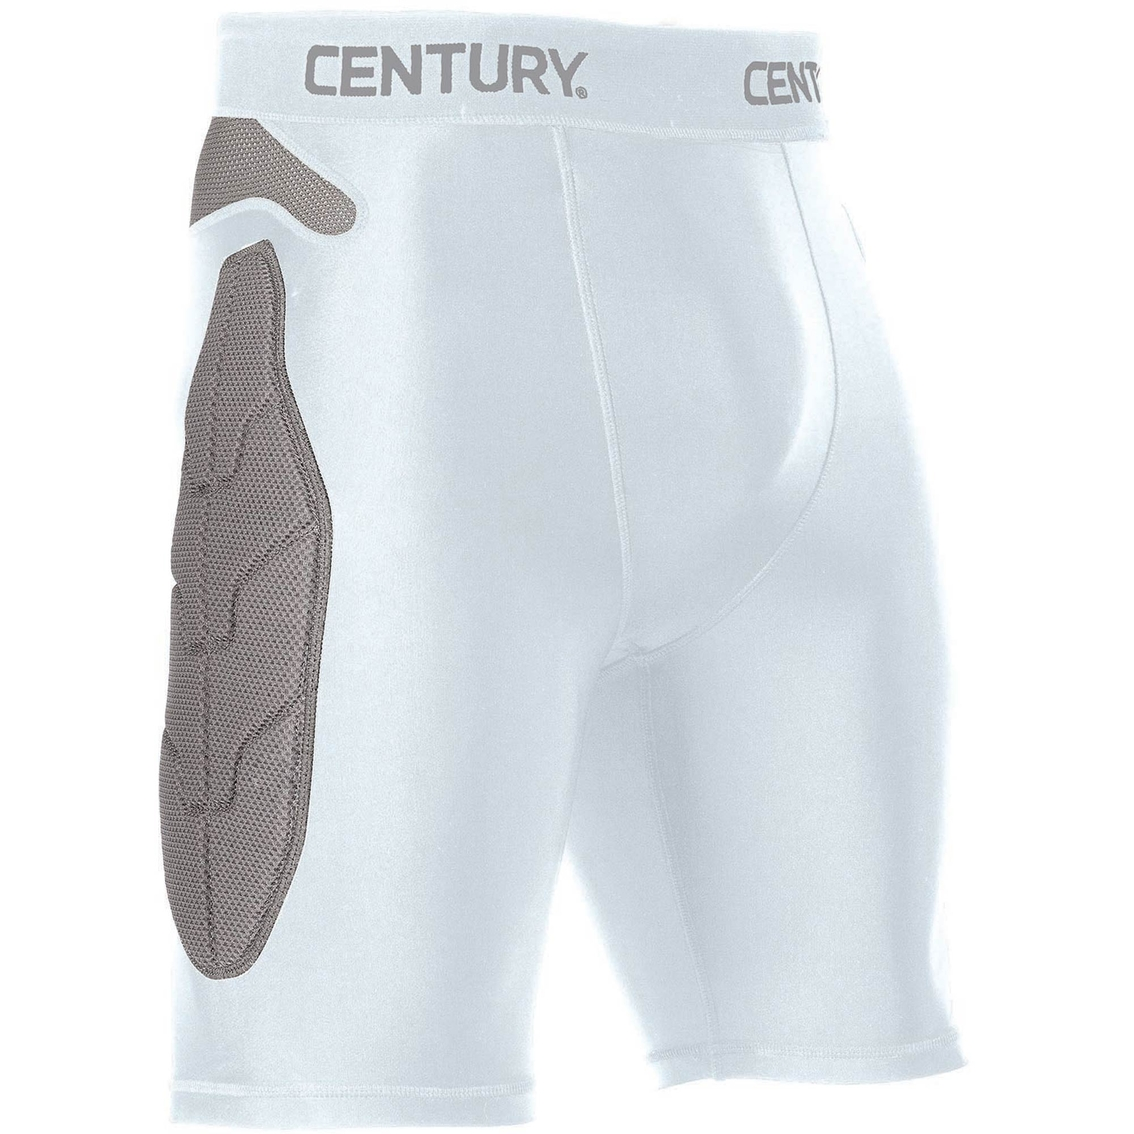 Century Martial Arts Padded Compression Shorts | Shorts